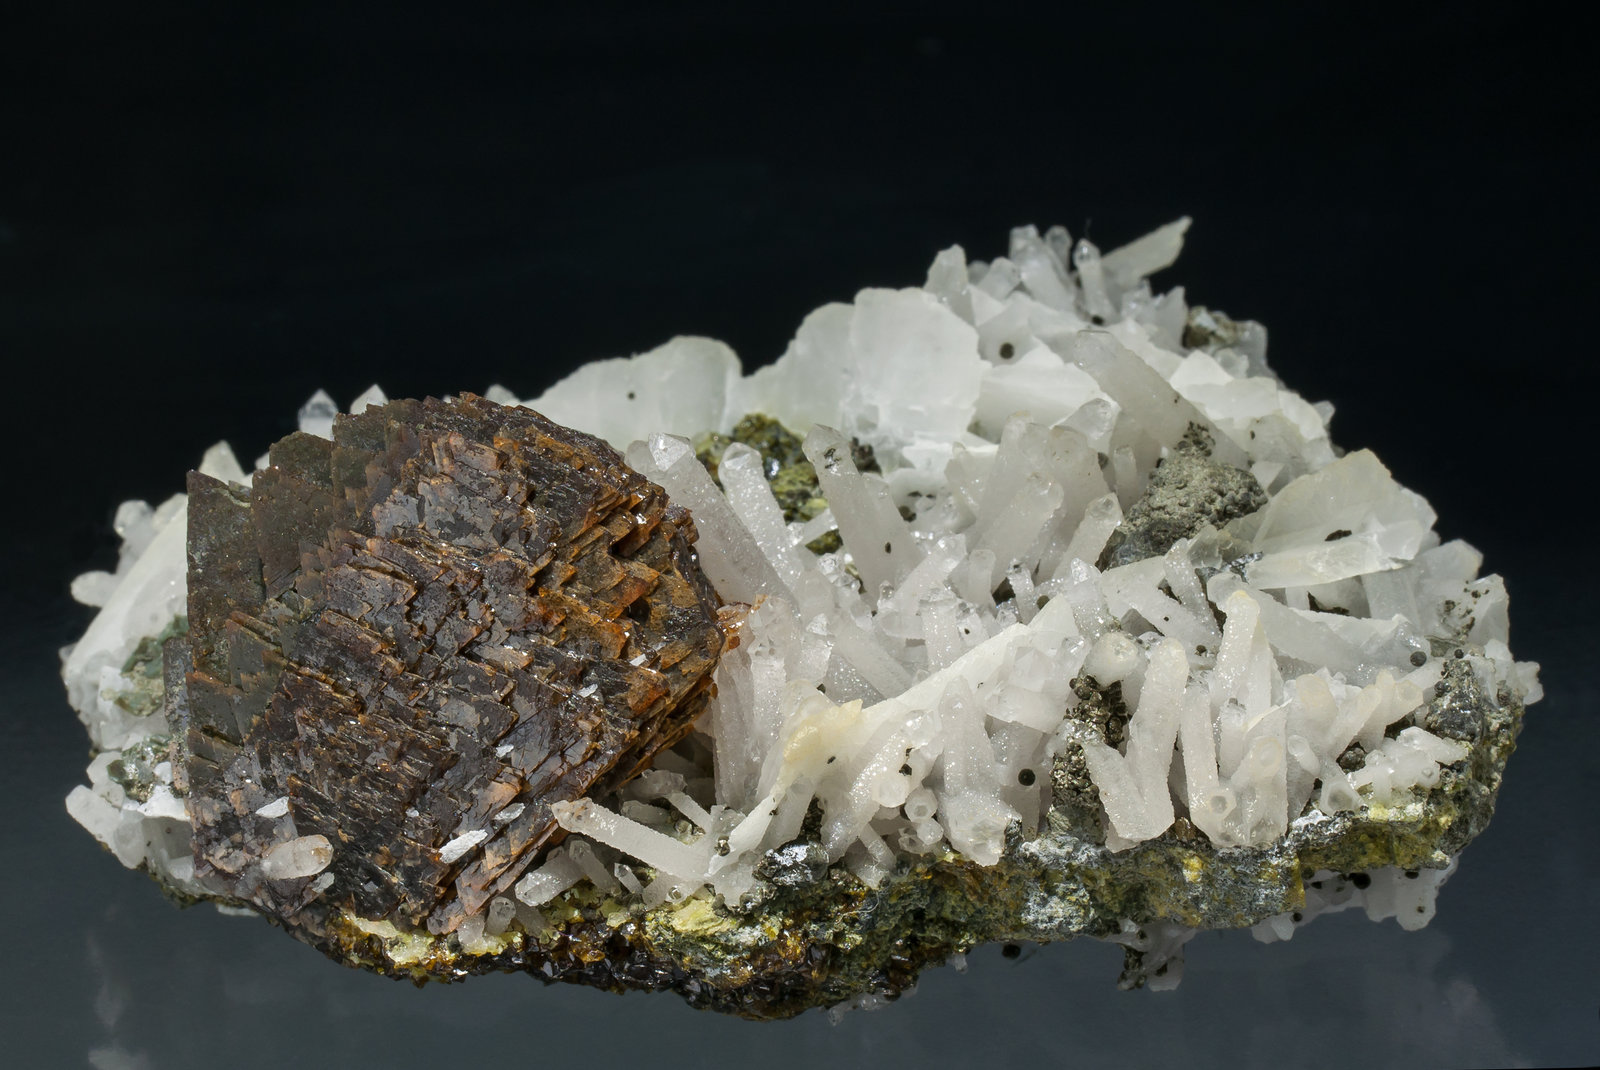 specimens/s_imagesAB1/Genthelvite-MR32AB1f.jpg